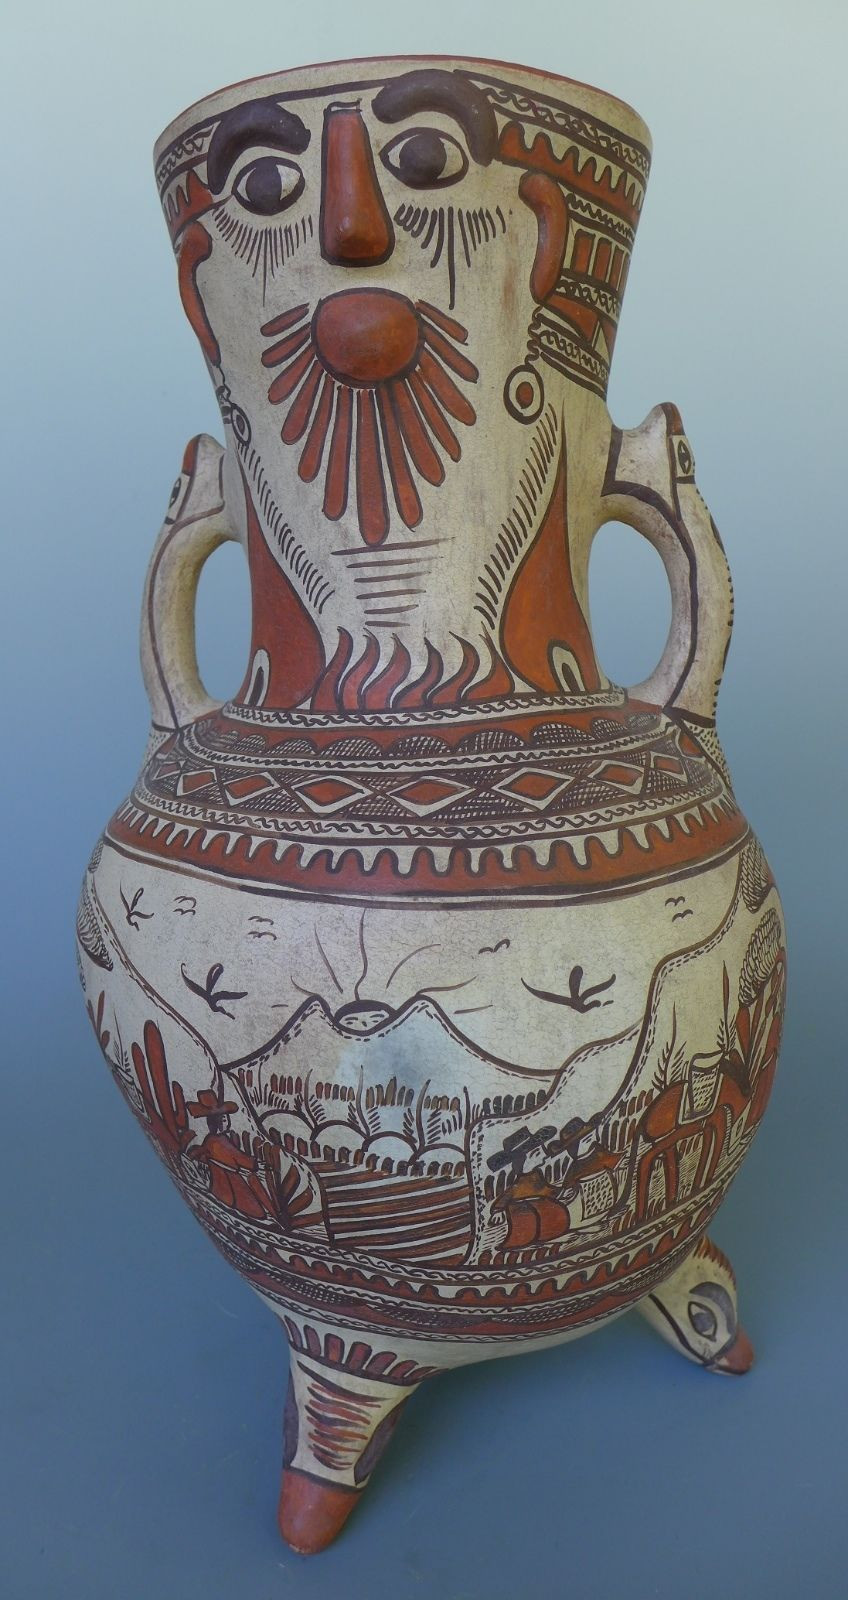 mexican ceramic vases of xl mexican pottery guerrero ameyaltepec ceramic tri pod urn 15 1 2 throughout xl mexican pottery guerrero ameyaltepec ceramic tri pod urn 15 1 2 tall ebay